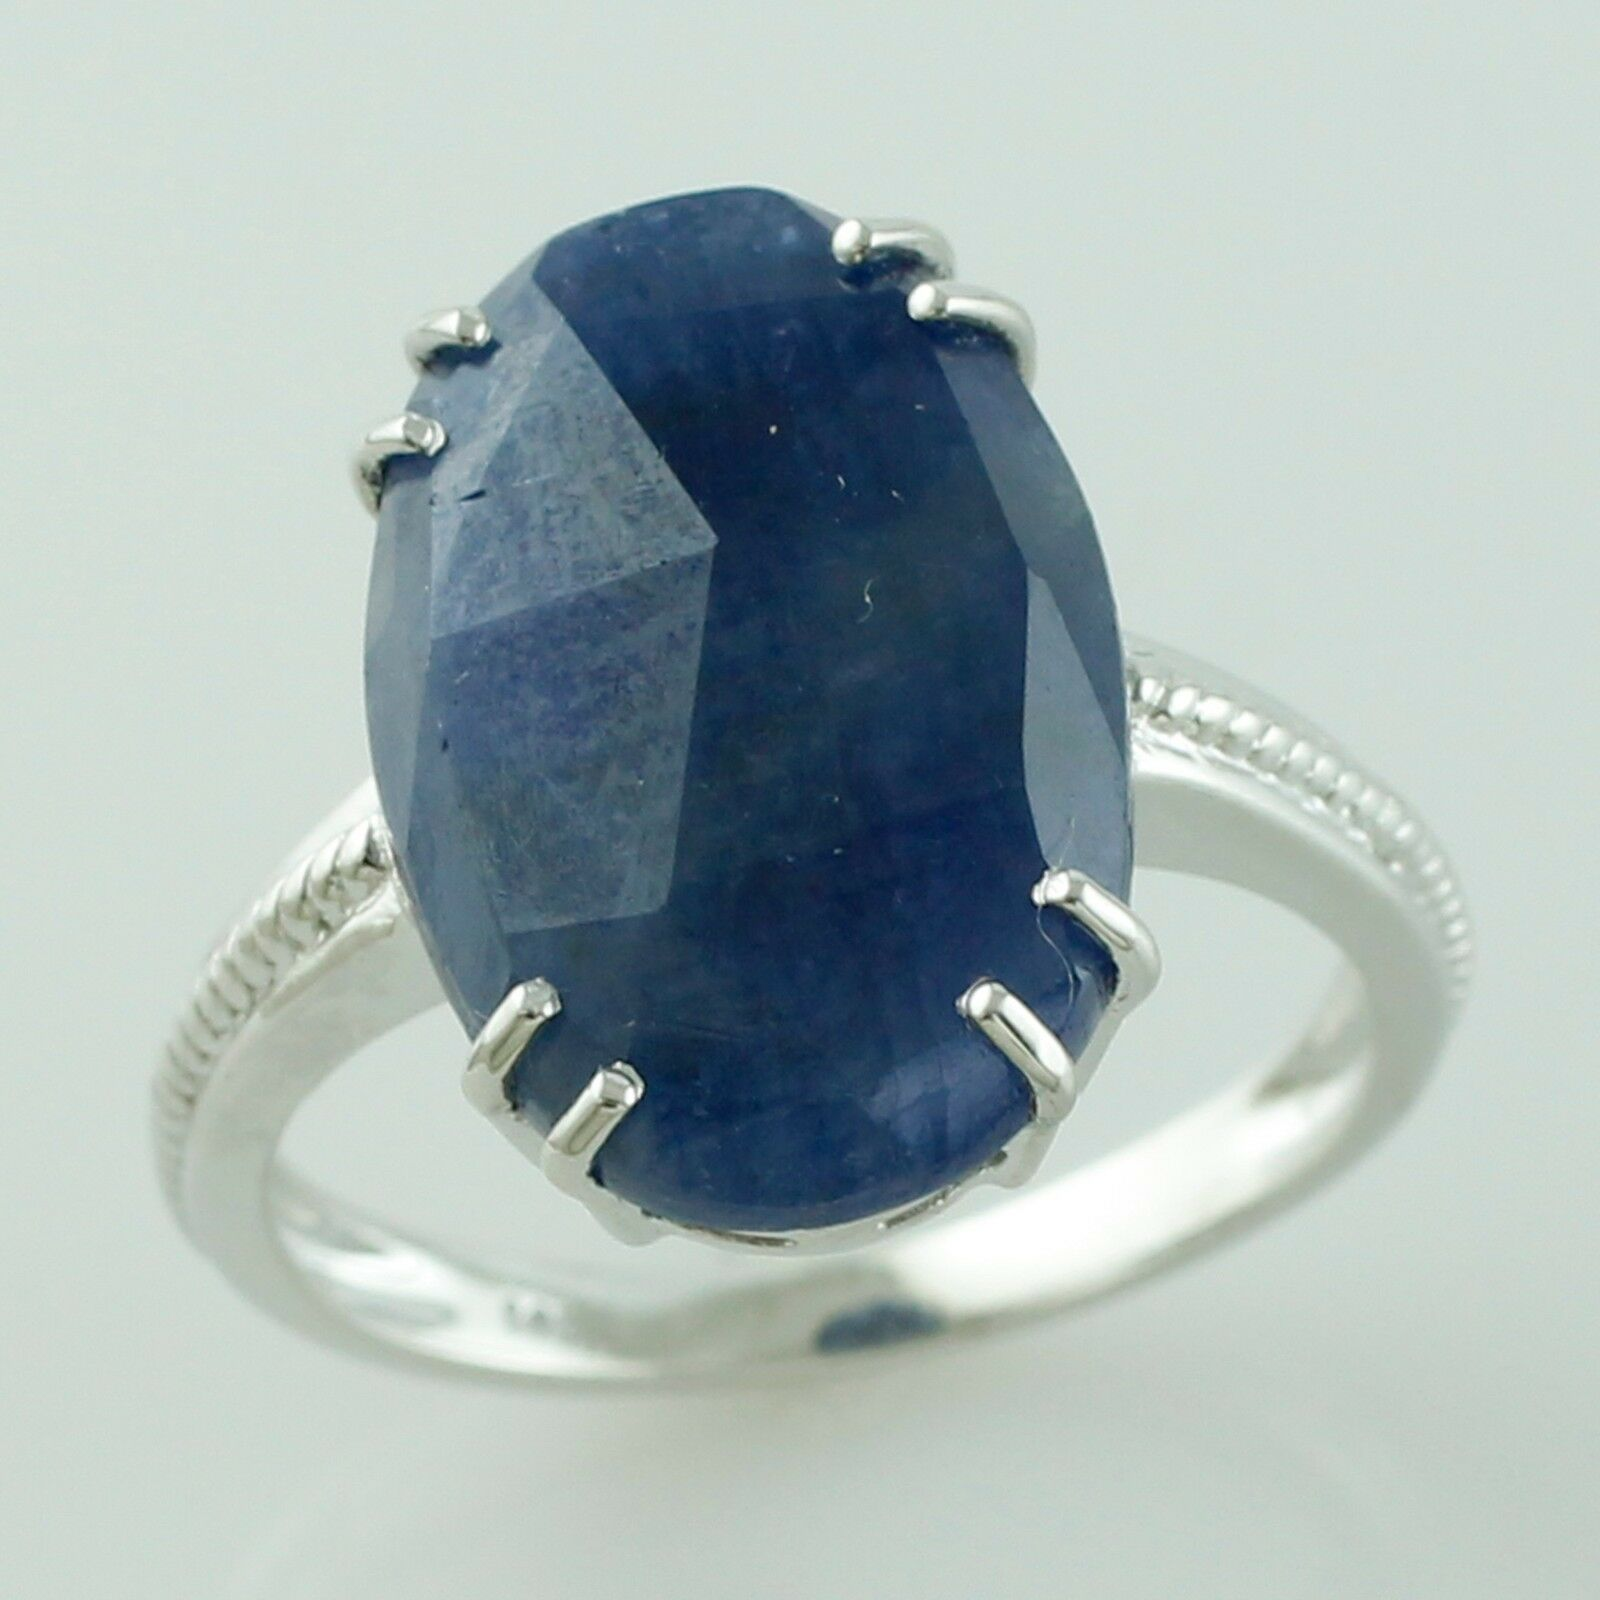 Indian Sapphire 7.88 Ct September Birthston Ring Solid gold Anniversary Jewelry